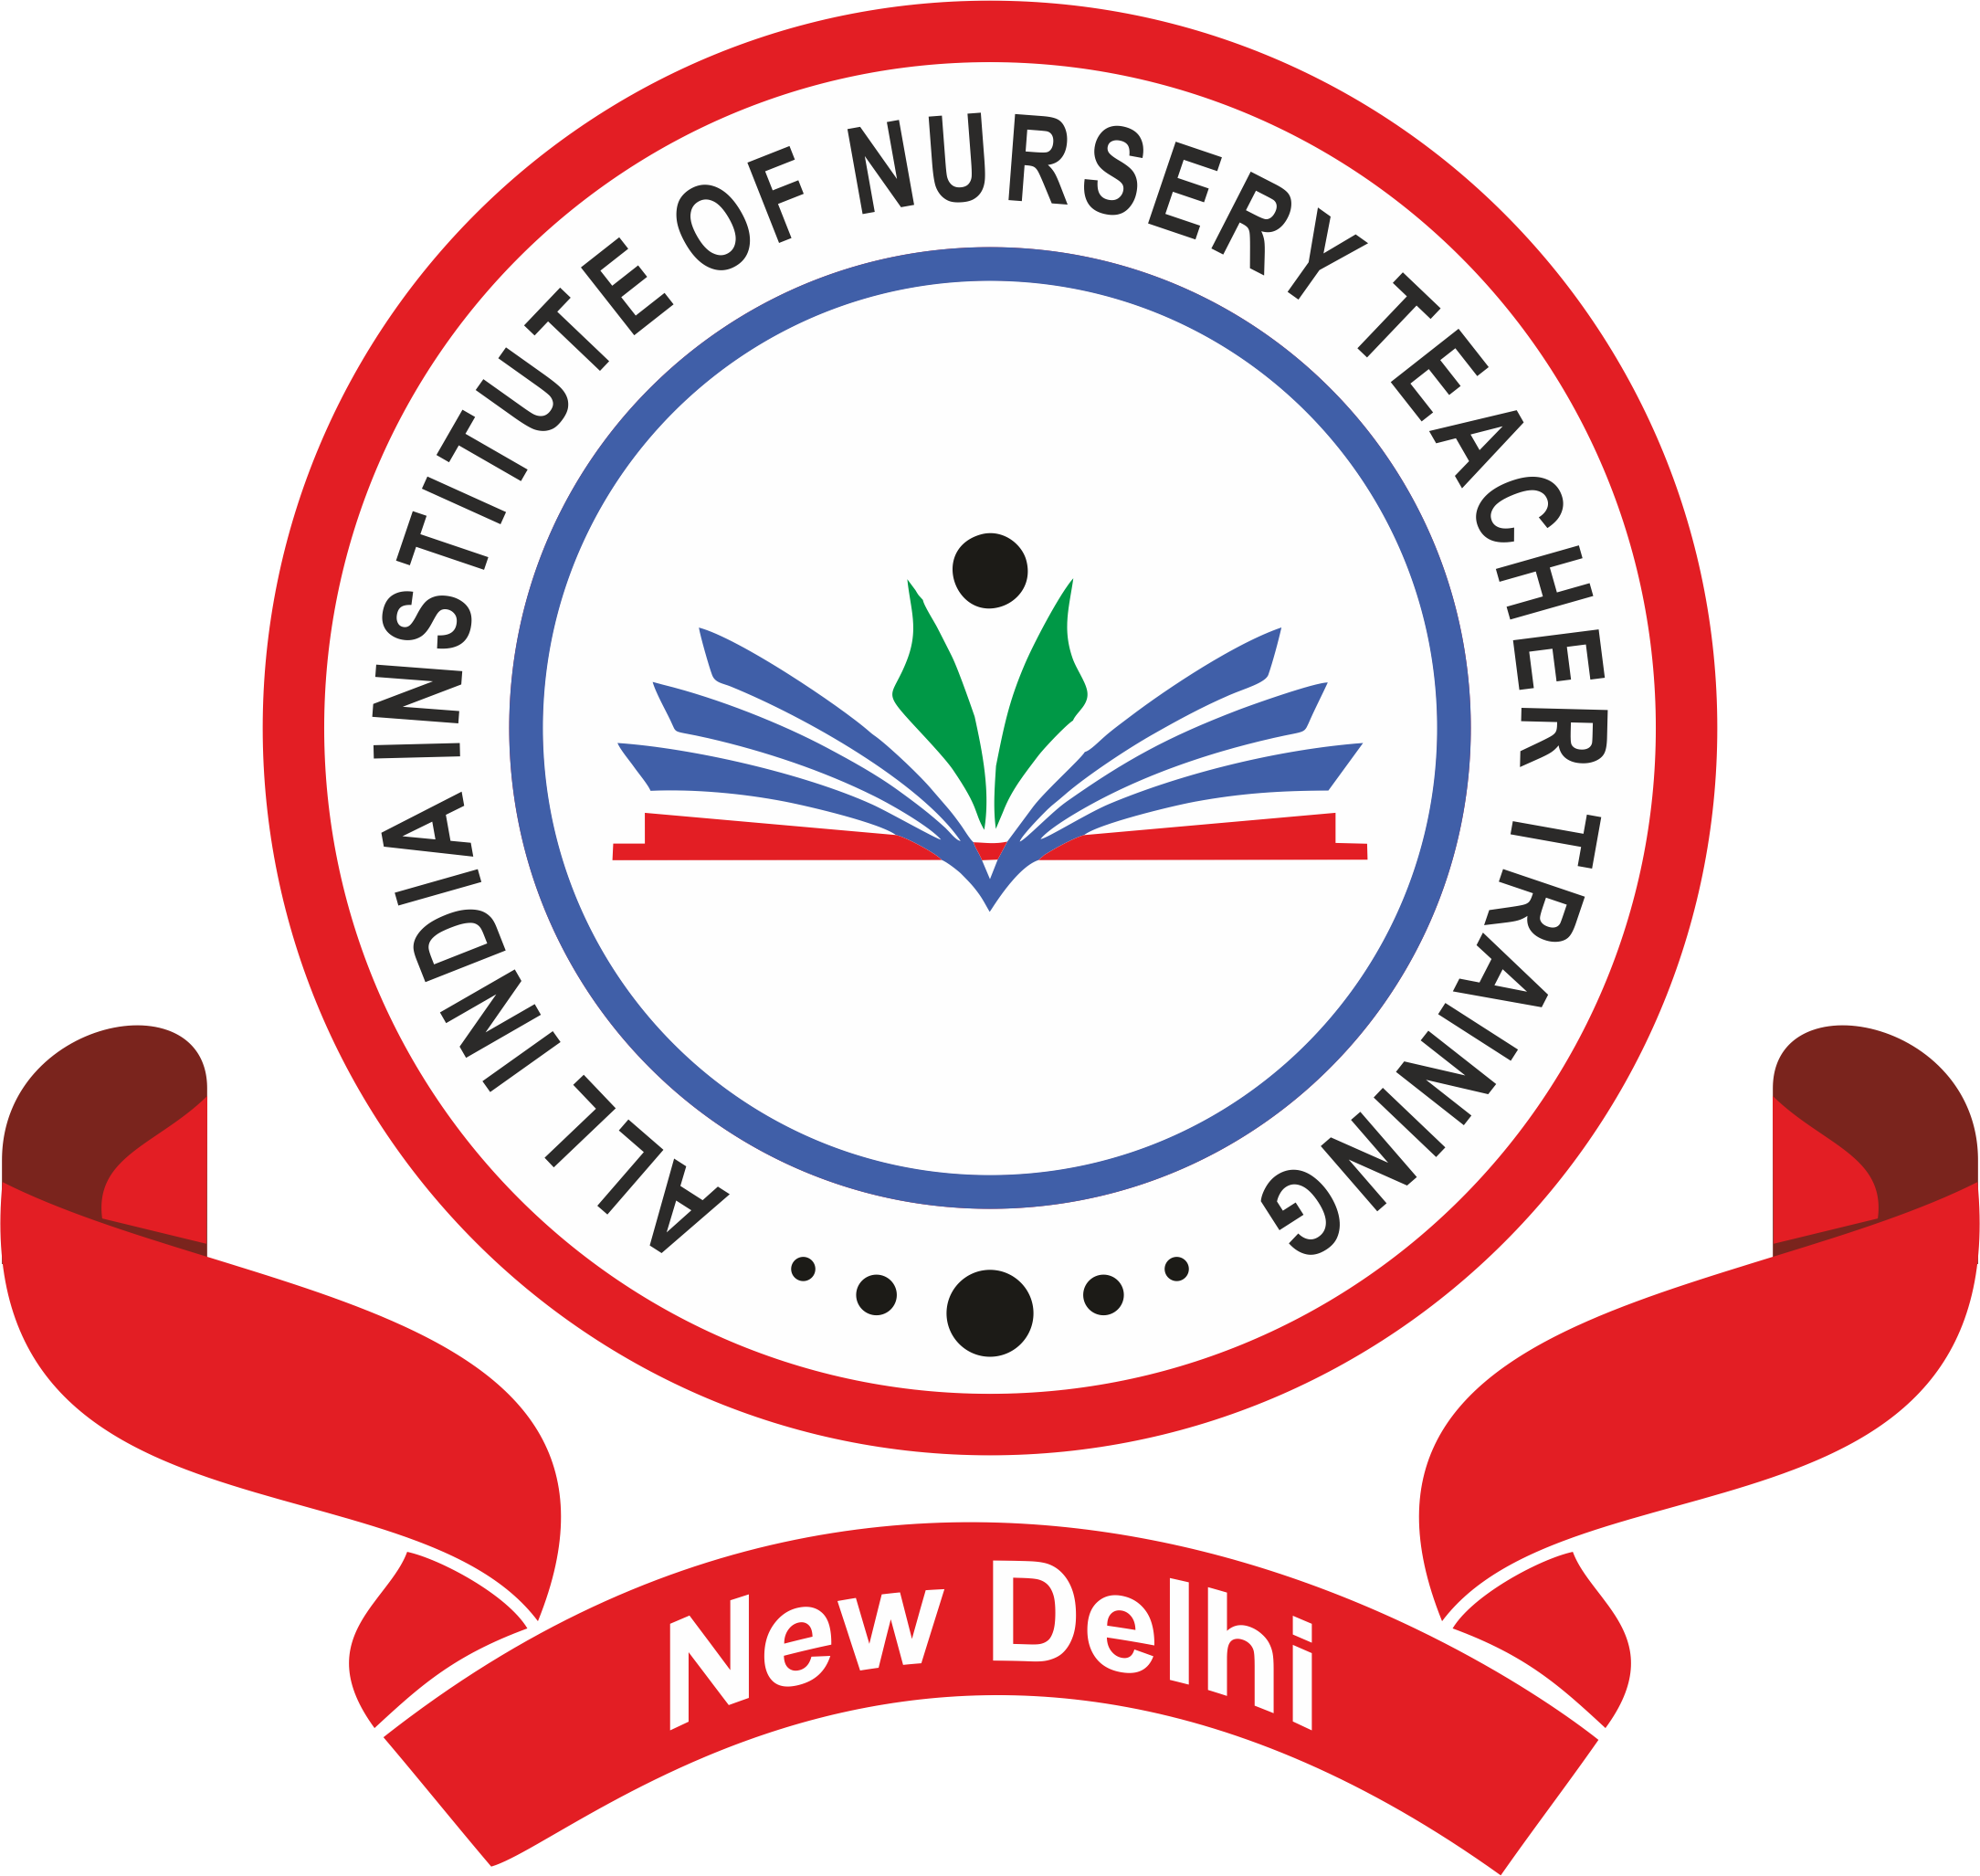 ALL INDIA INSTITUTE OF NURSERY TEACHER TRAINING